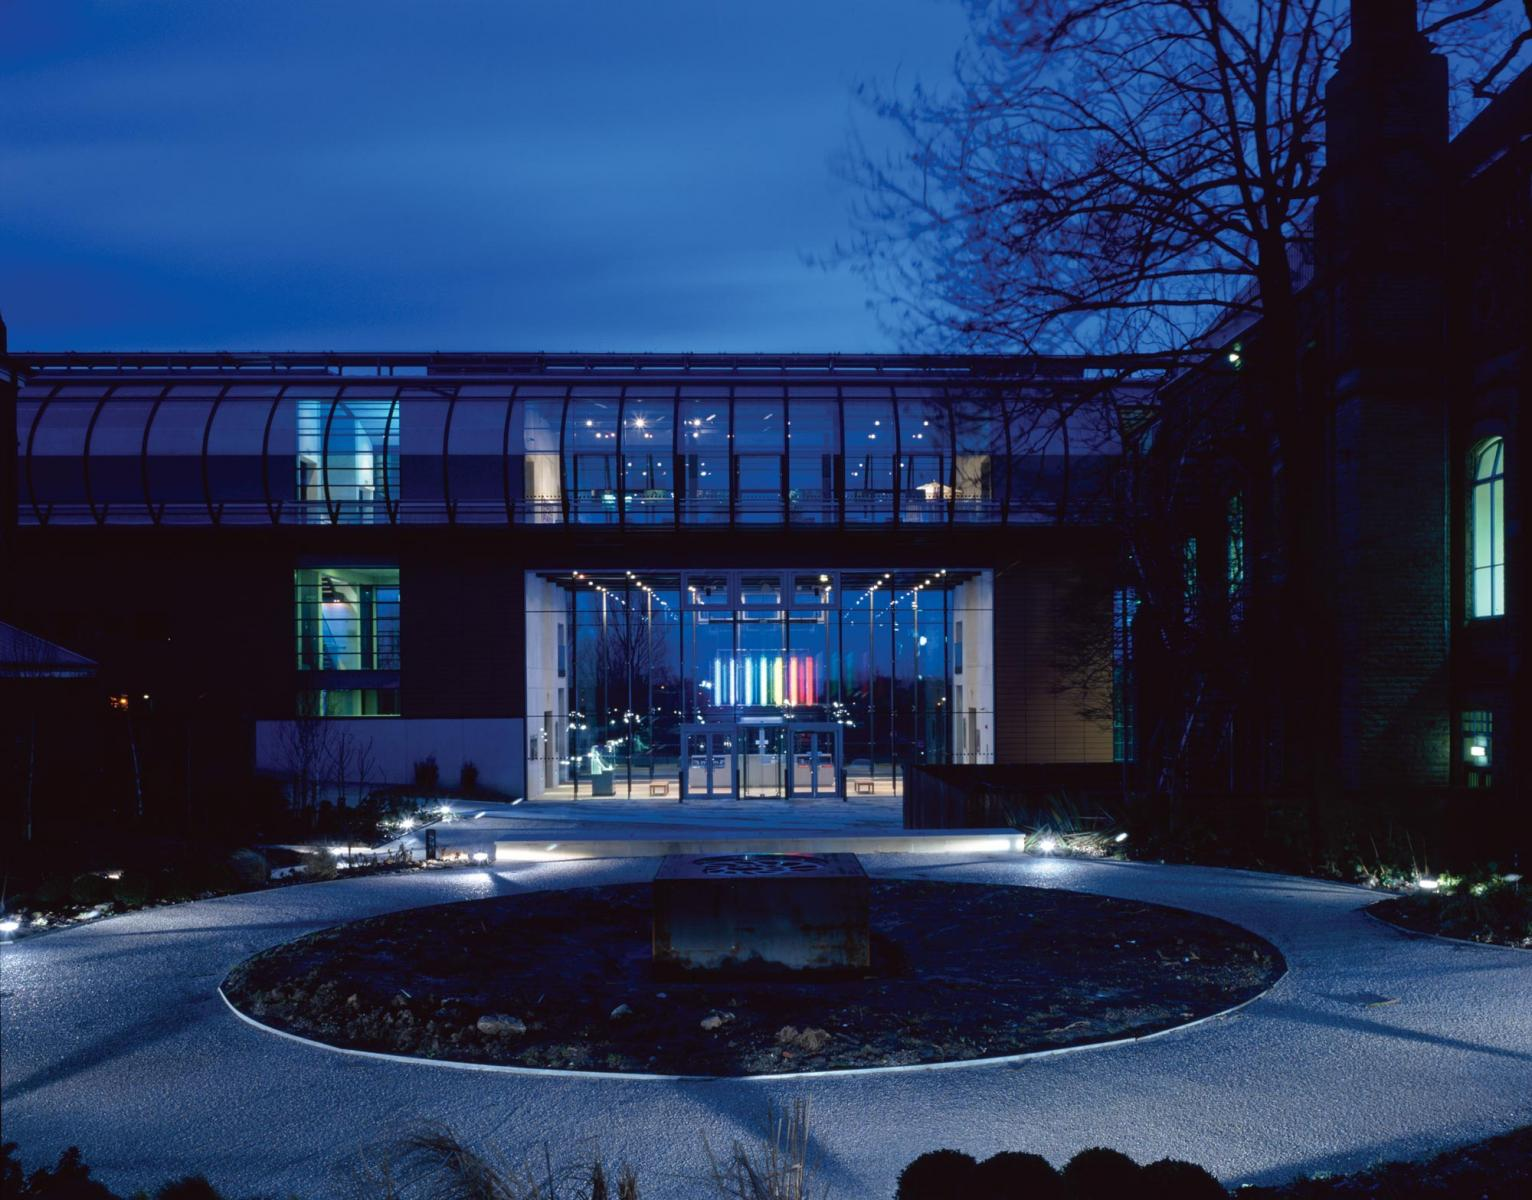 Gallery Oldham - Exterior view across park at night